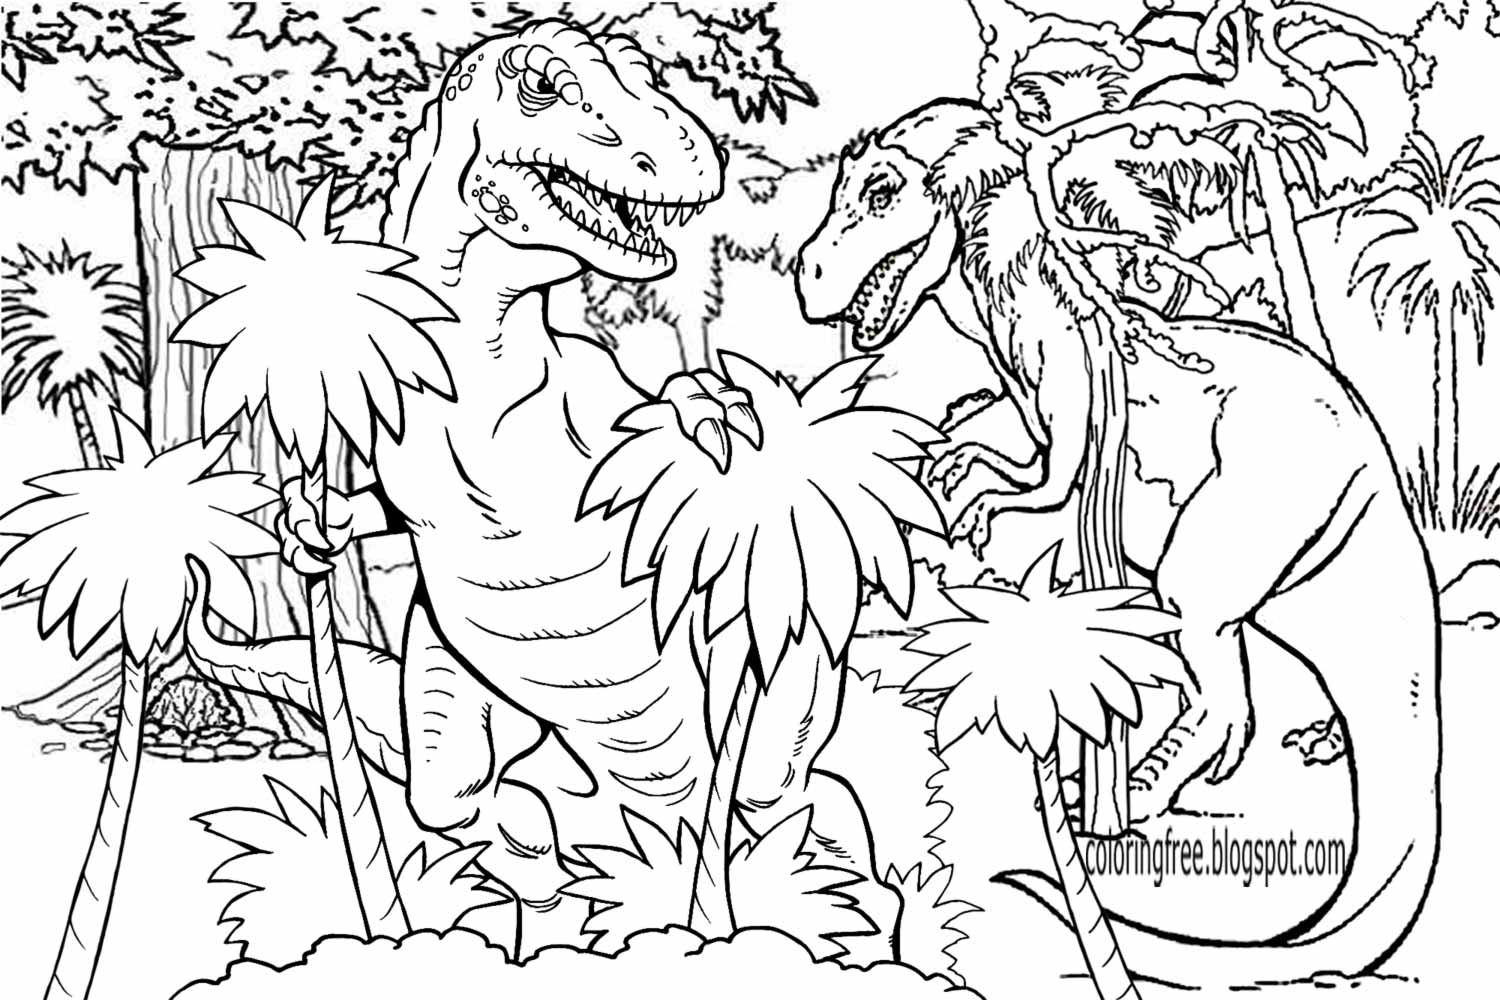 coloring dinosaur free printables free printable dinosaur coloring pages for kids coloring printables free dinosaur